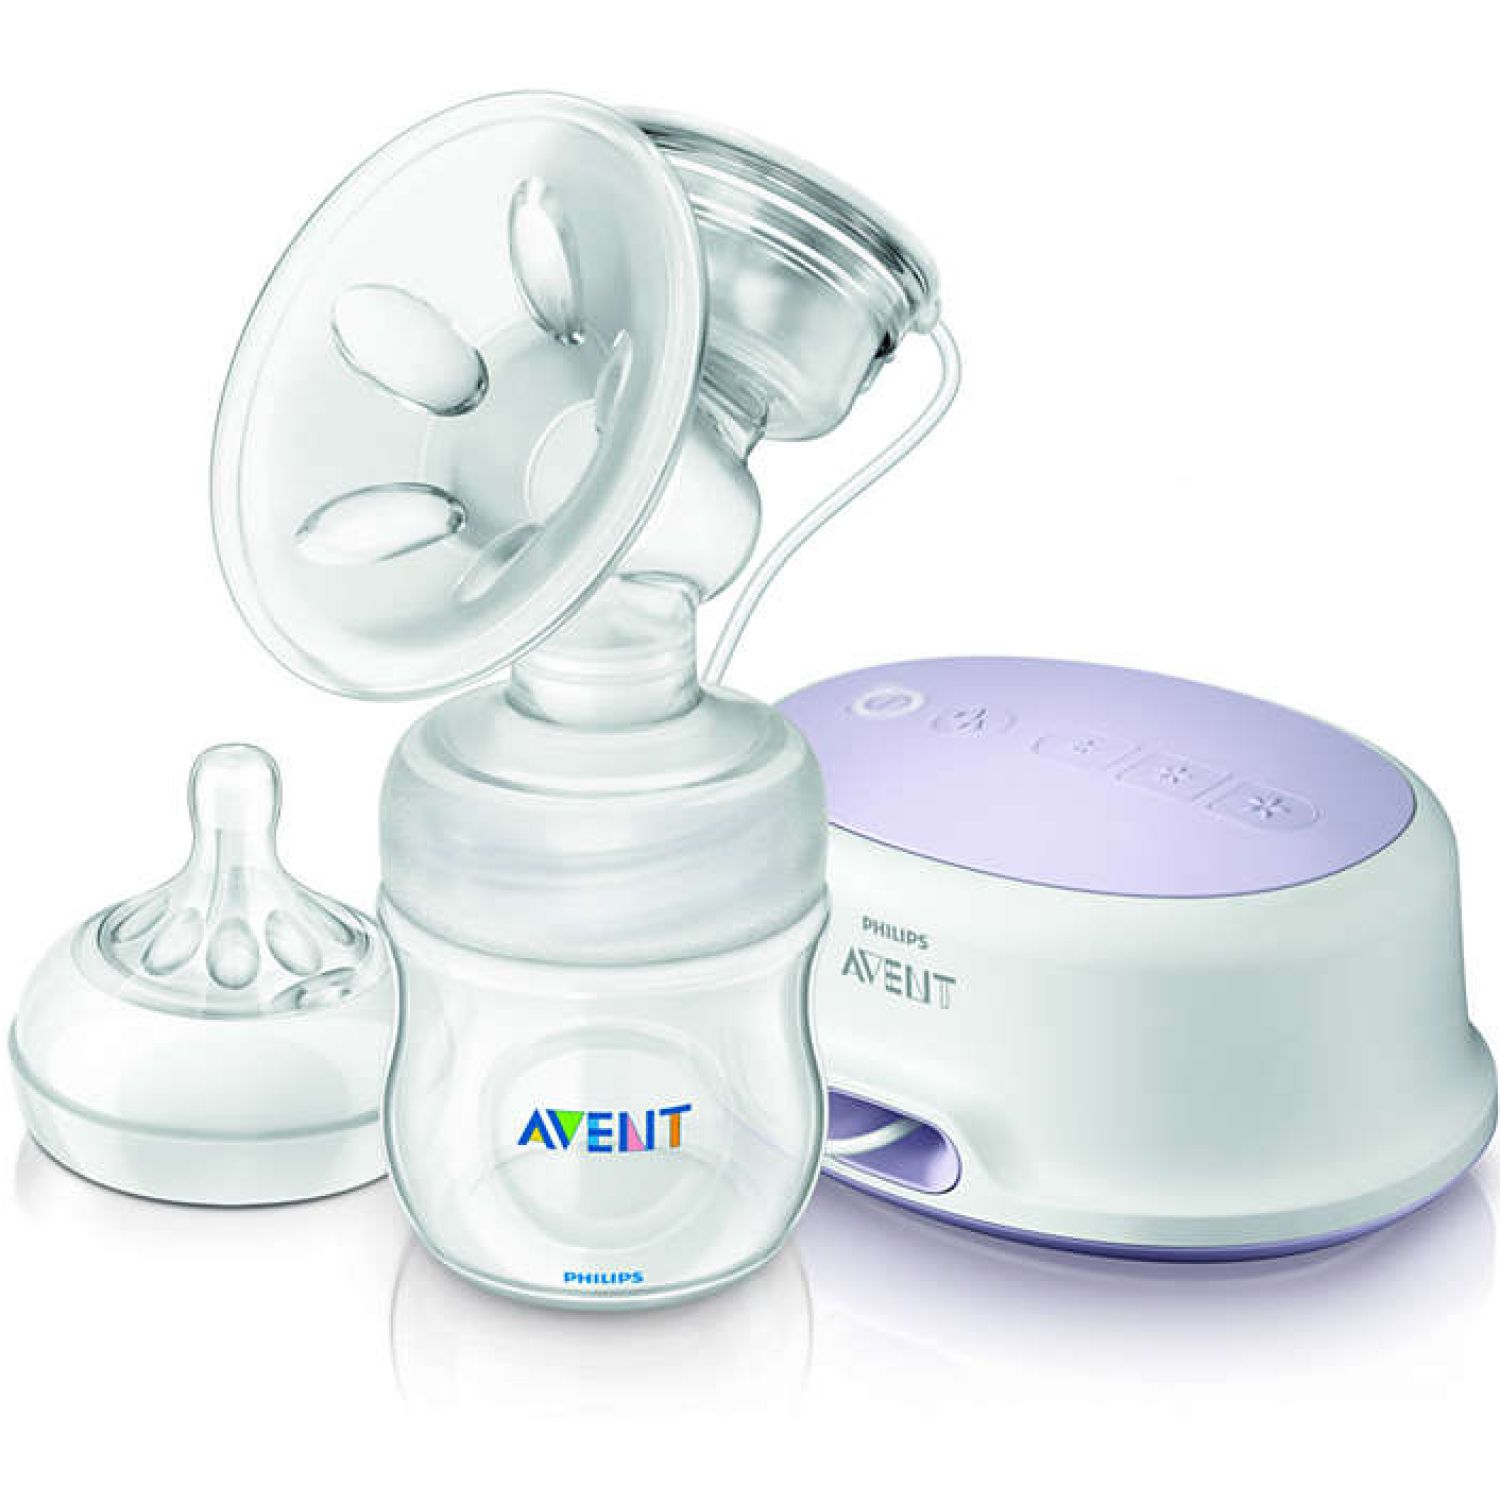 PHILIPS AVENT Extractor Electrico Avent Natural Simple Transparente Eléctricos Individuales